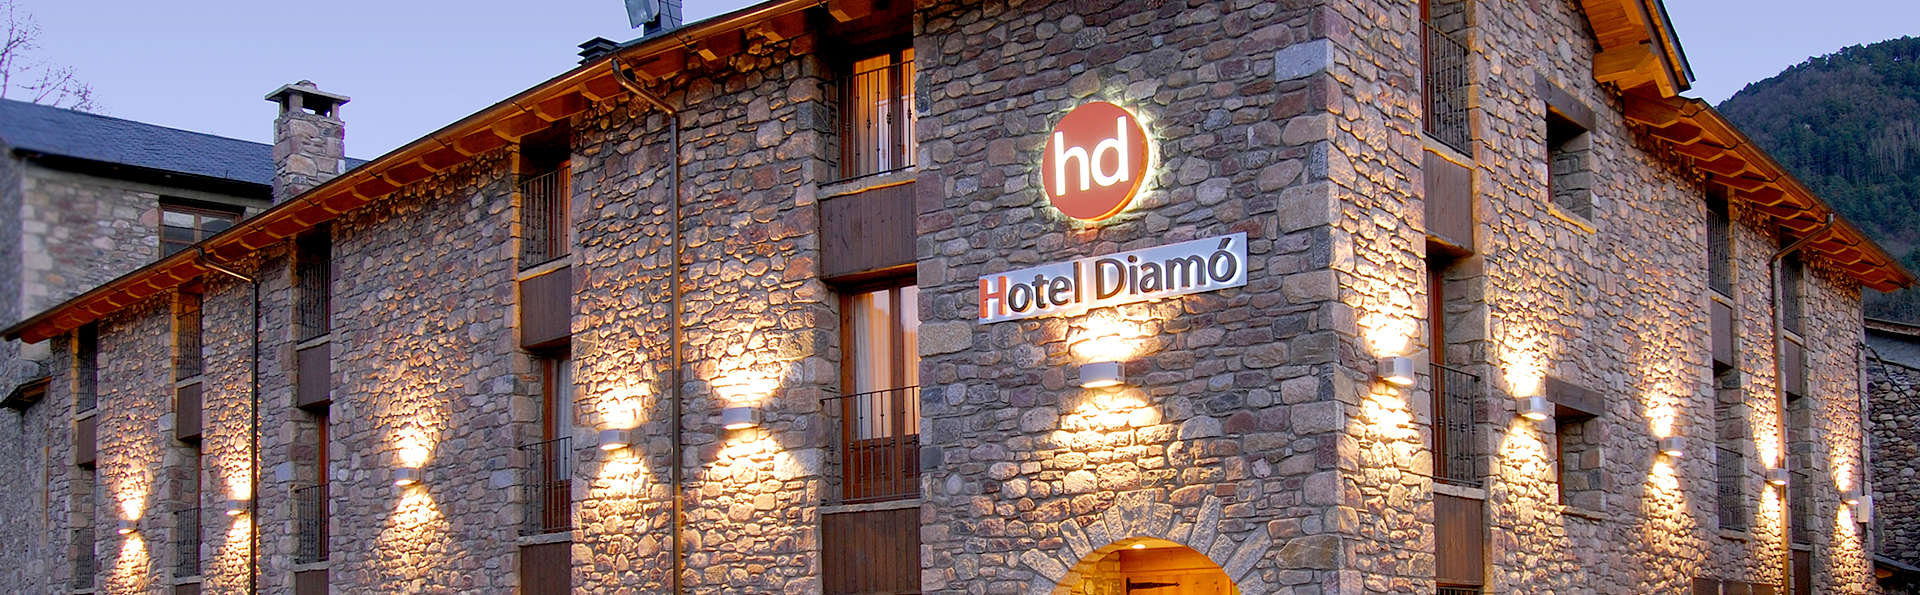 Hotel Diamó - Edit_front2.jpg